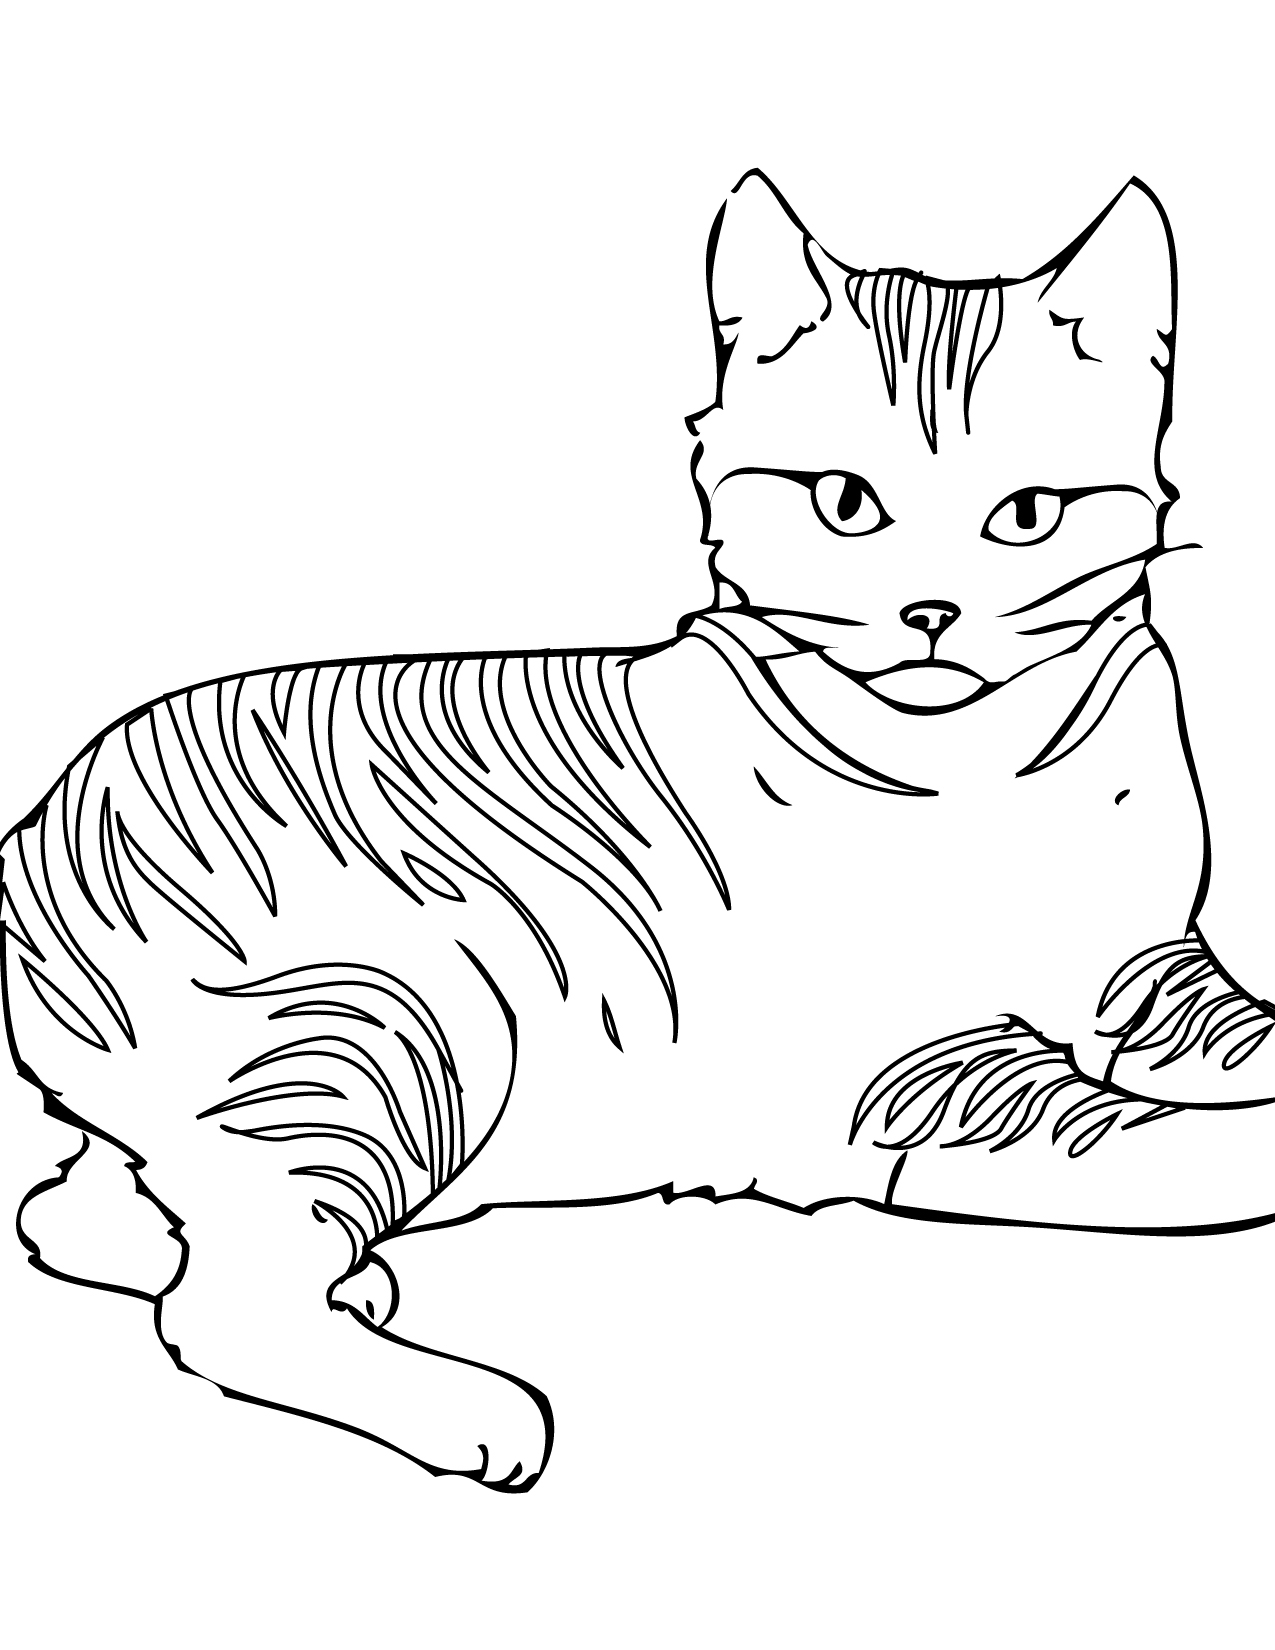 elsa and anna coloring pages - cat coloring pages 27